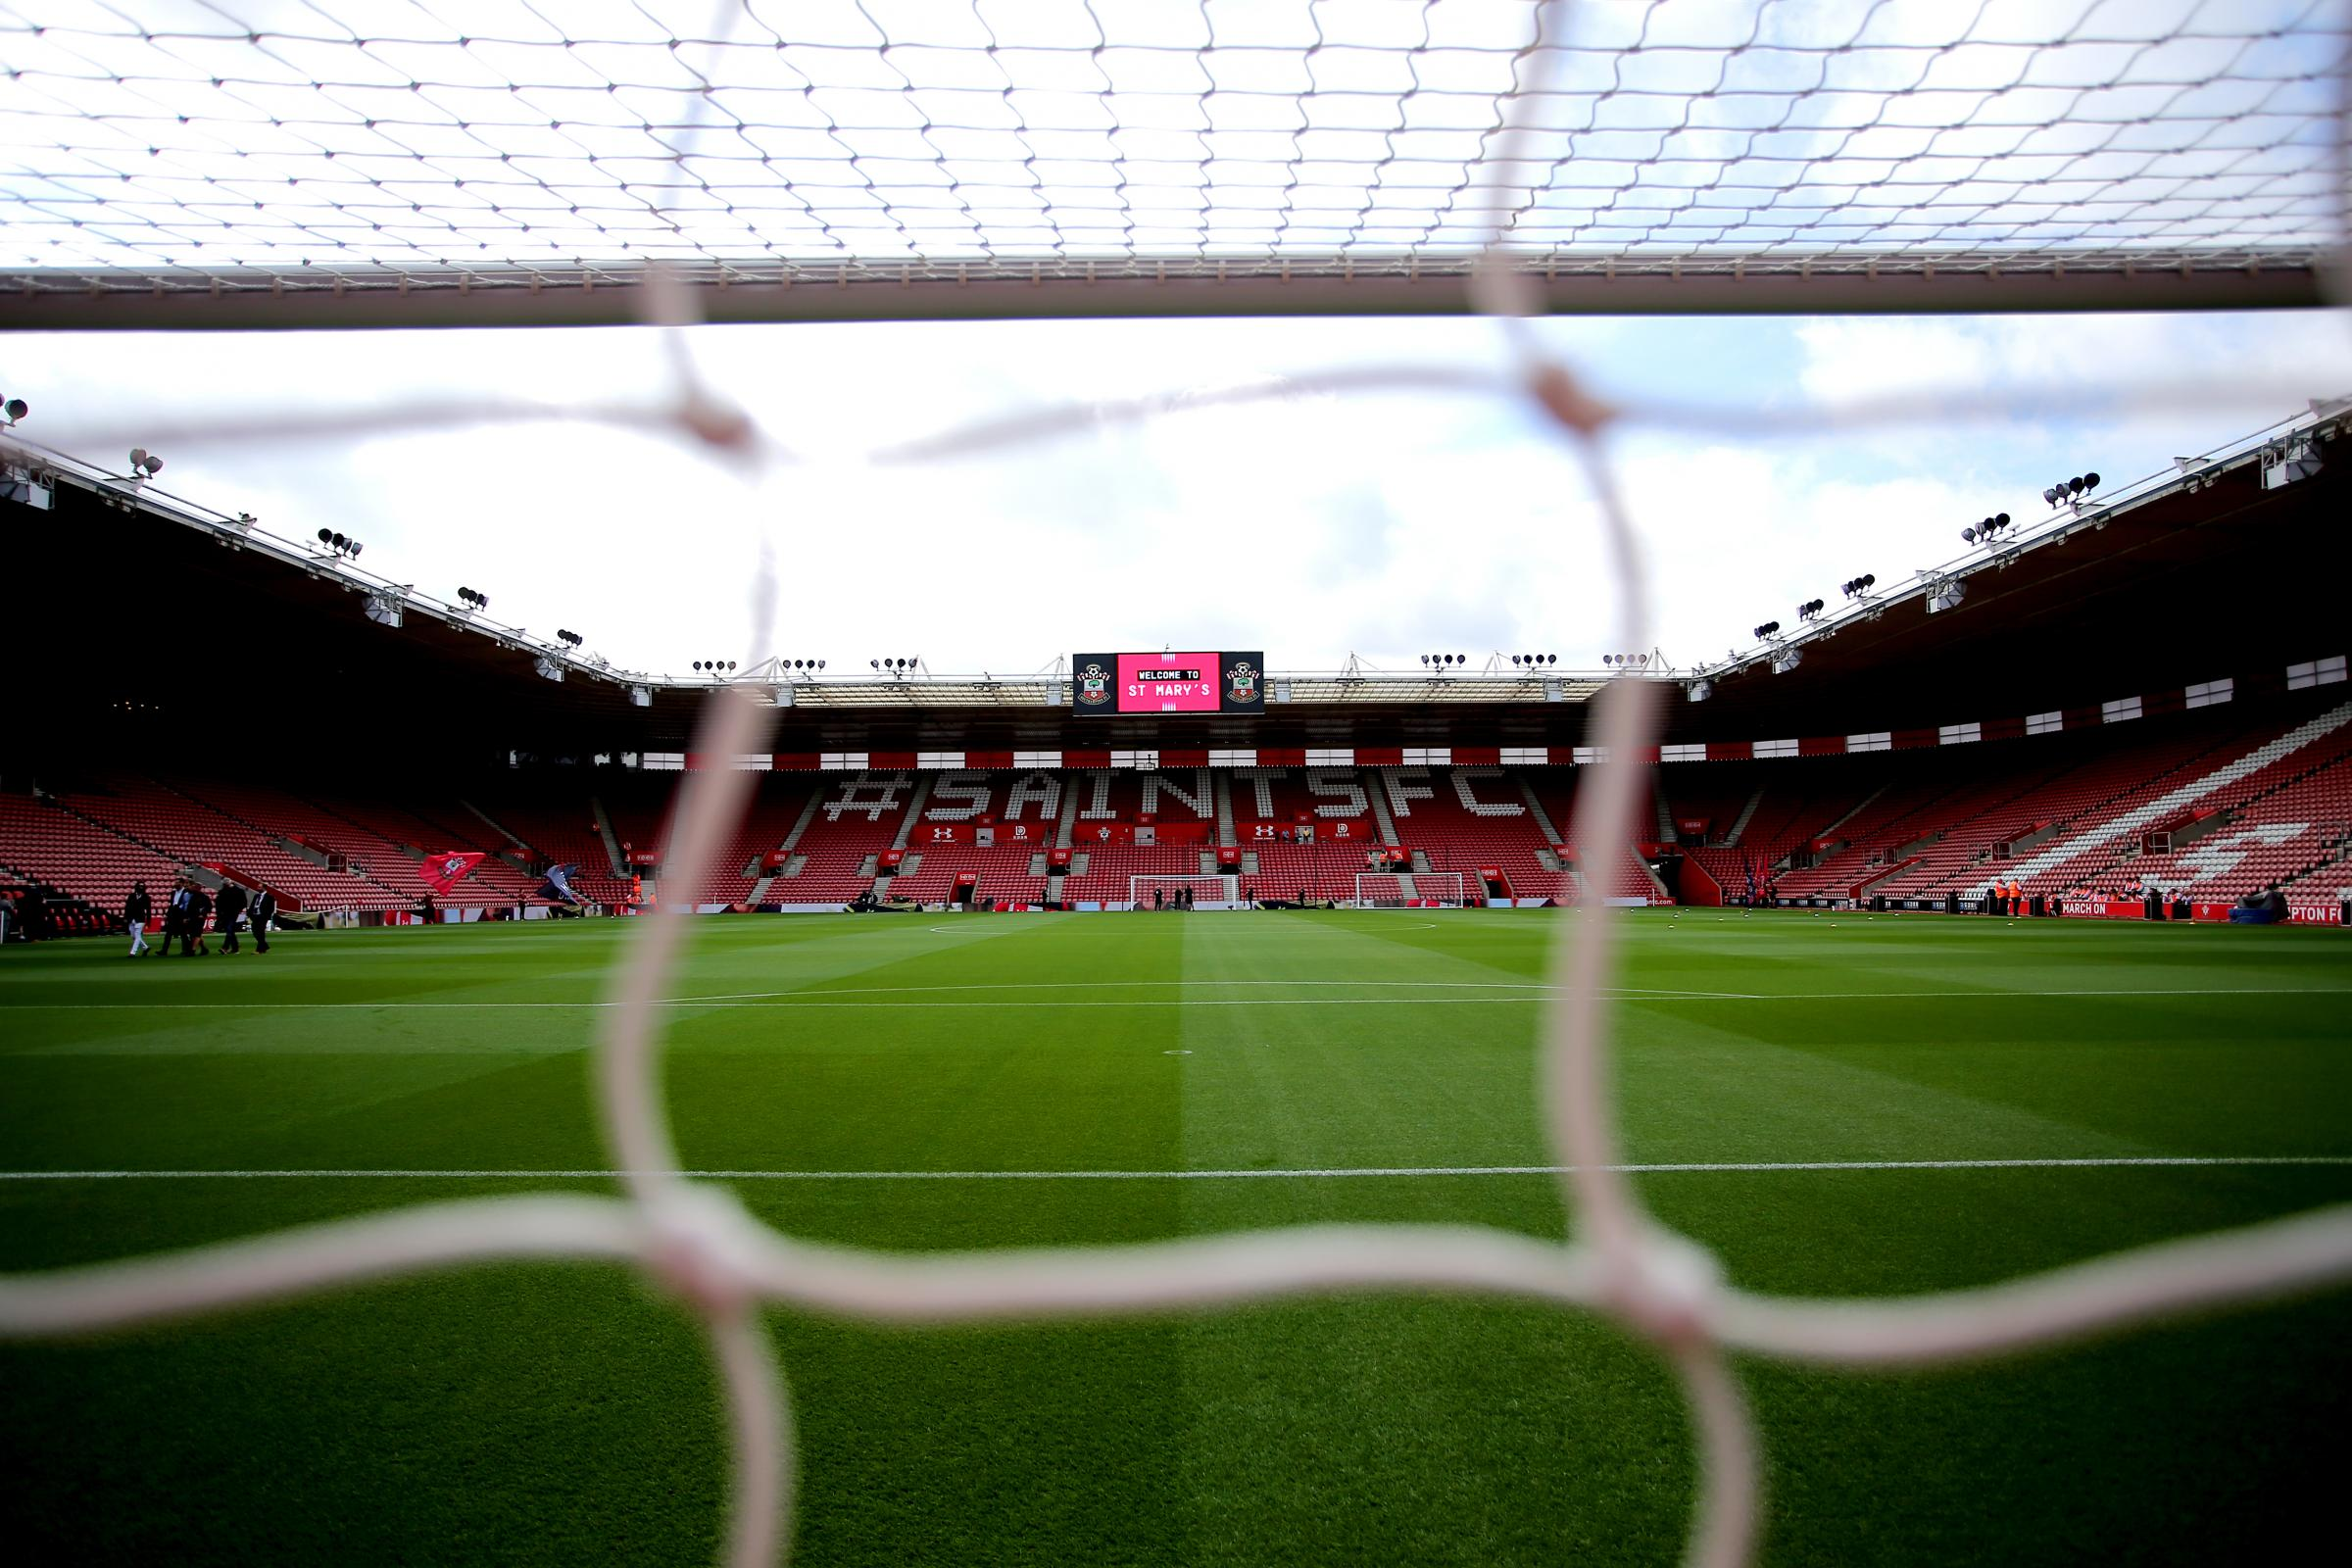 Southampton B vs Yeovil Town friendly cancelled due to Covid